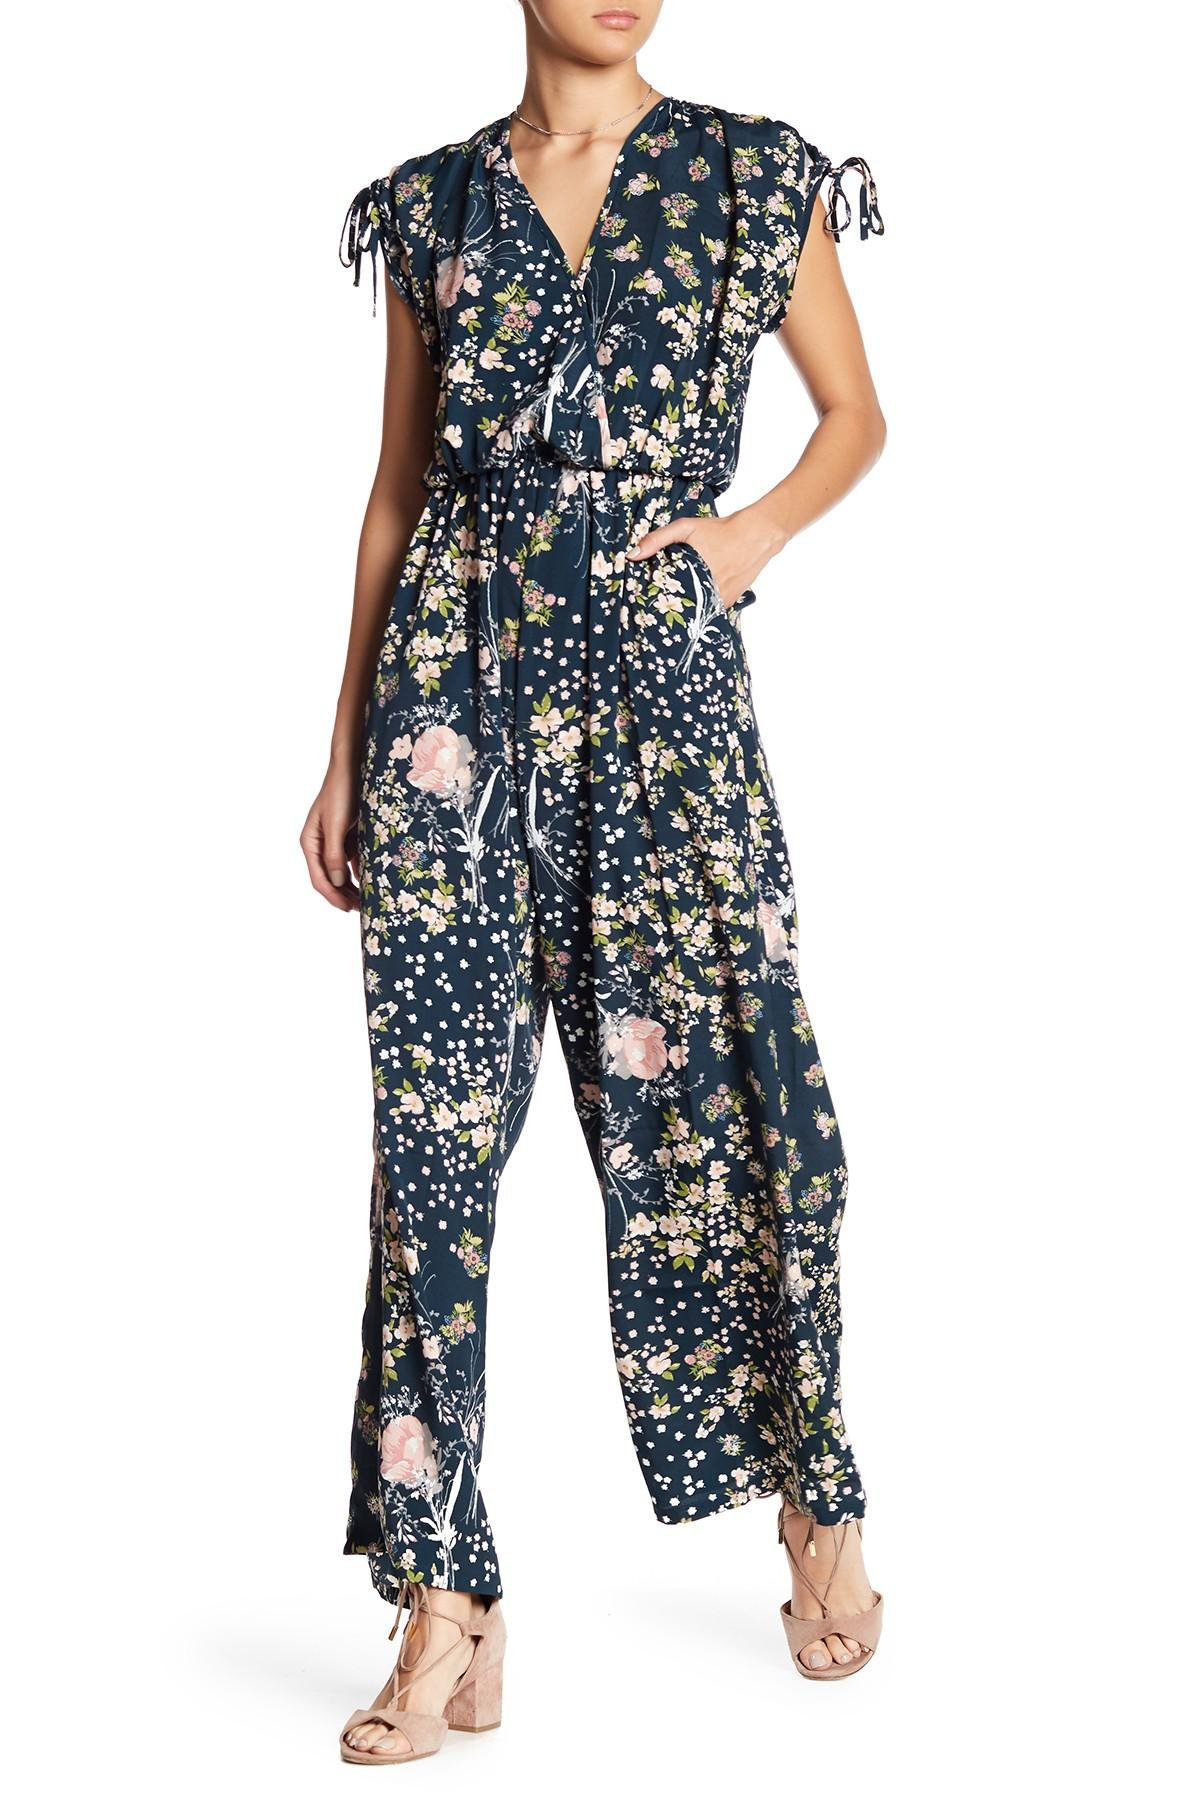 146d8dbff118 Lyst - Band Of Gypsies Moody Short-sleeve Floral Jumpsuit in Blue